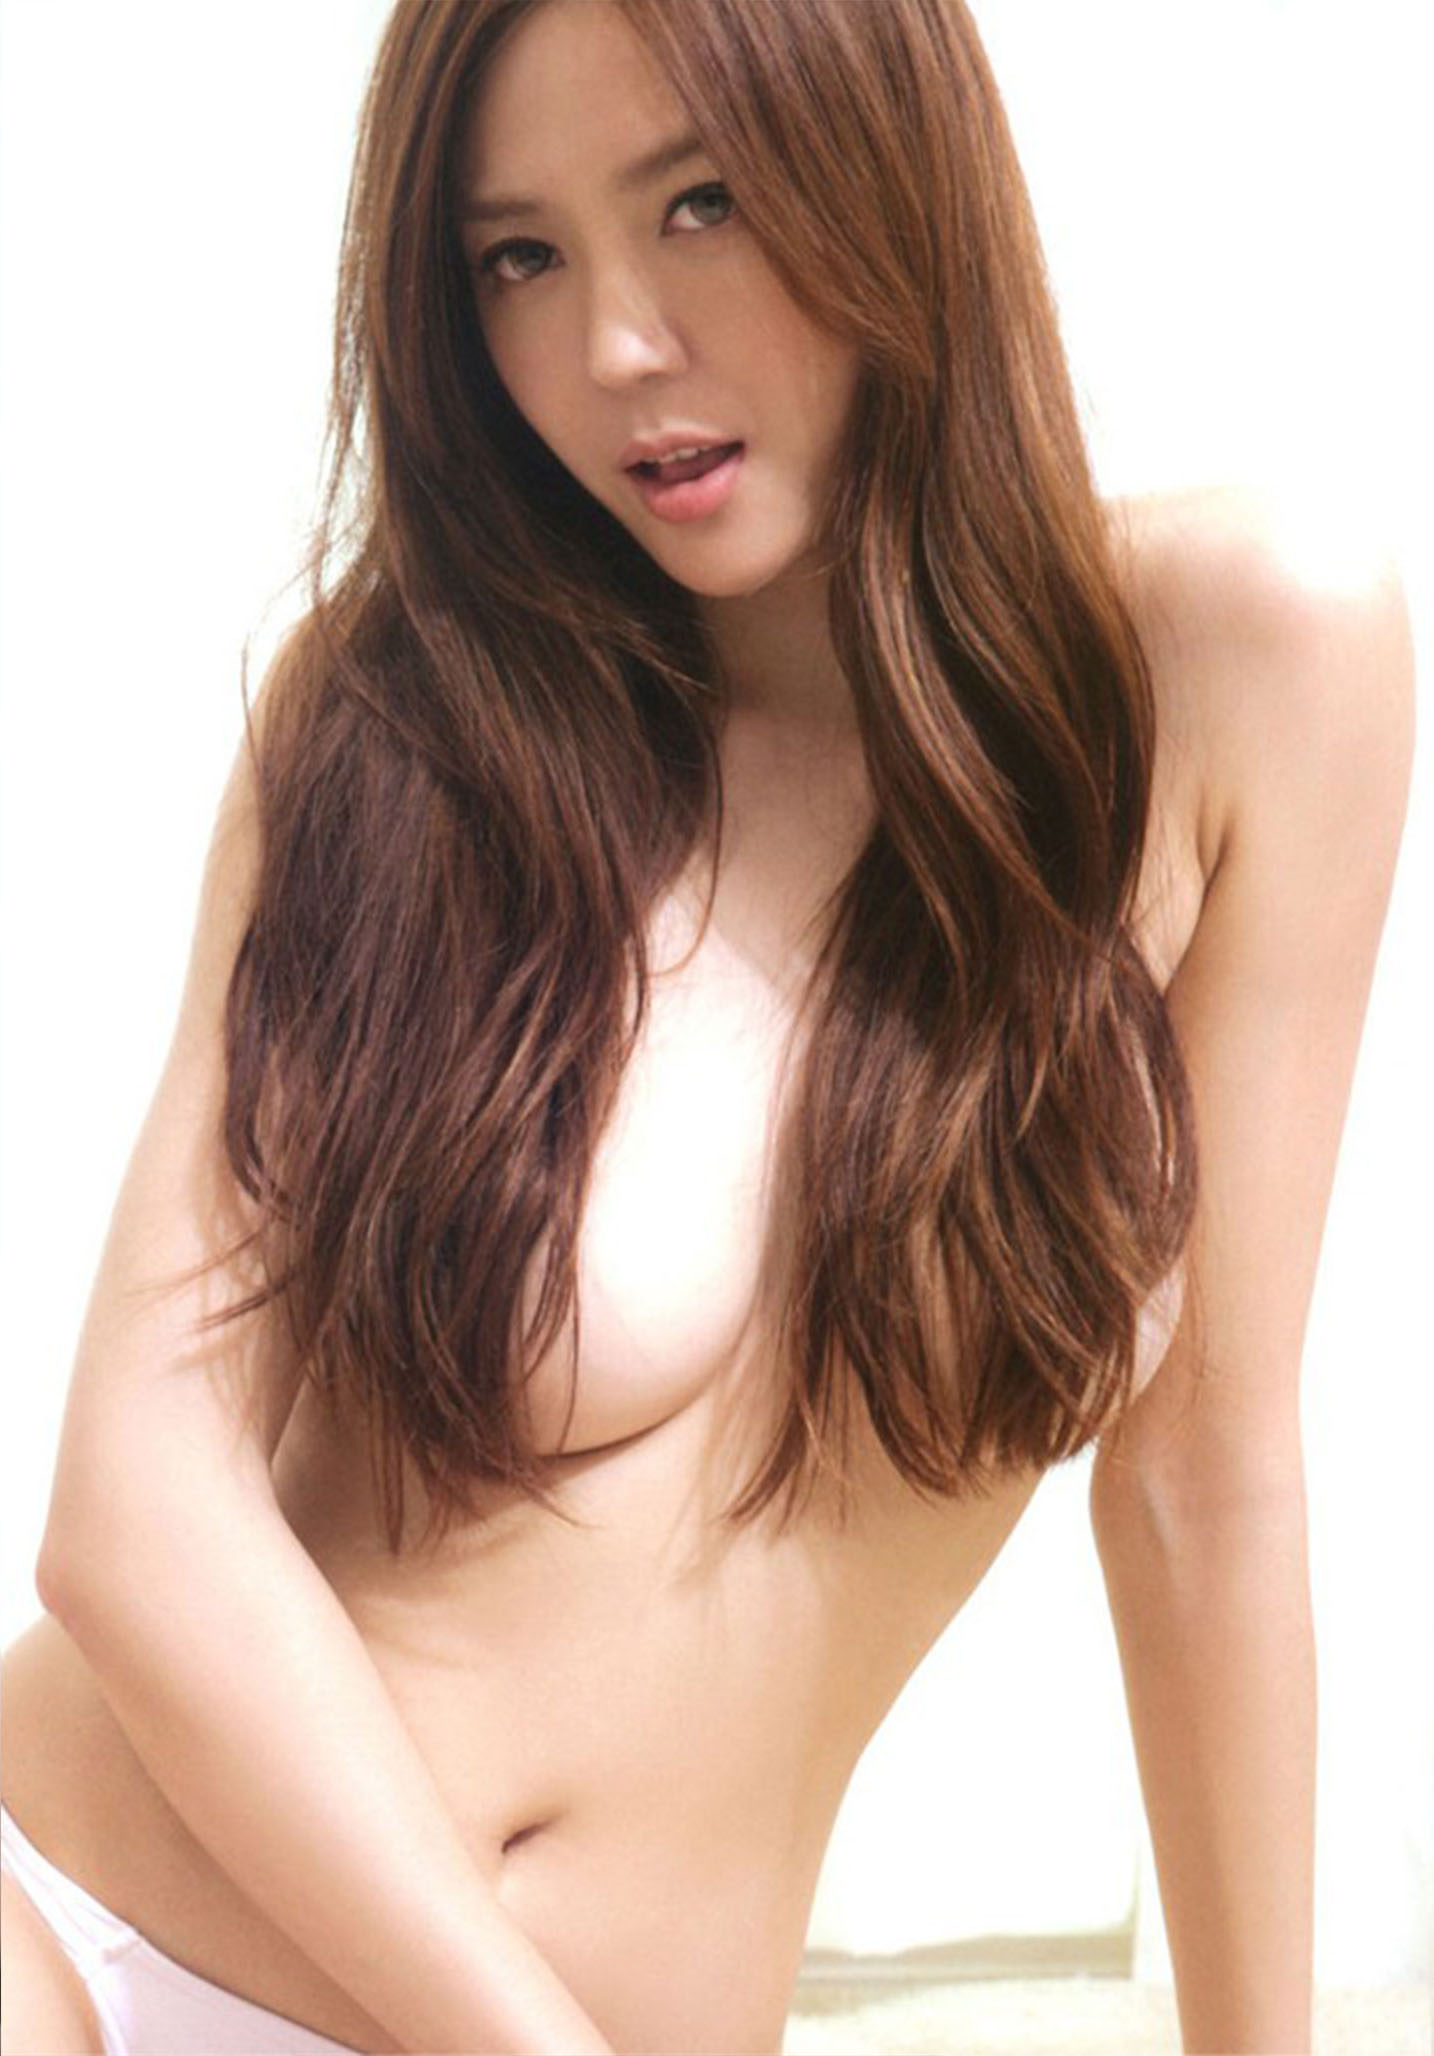 body to body massage, body to body massage London, outcall body to body massage London,